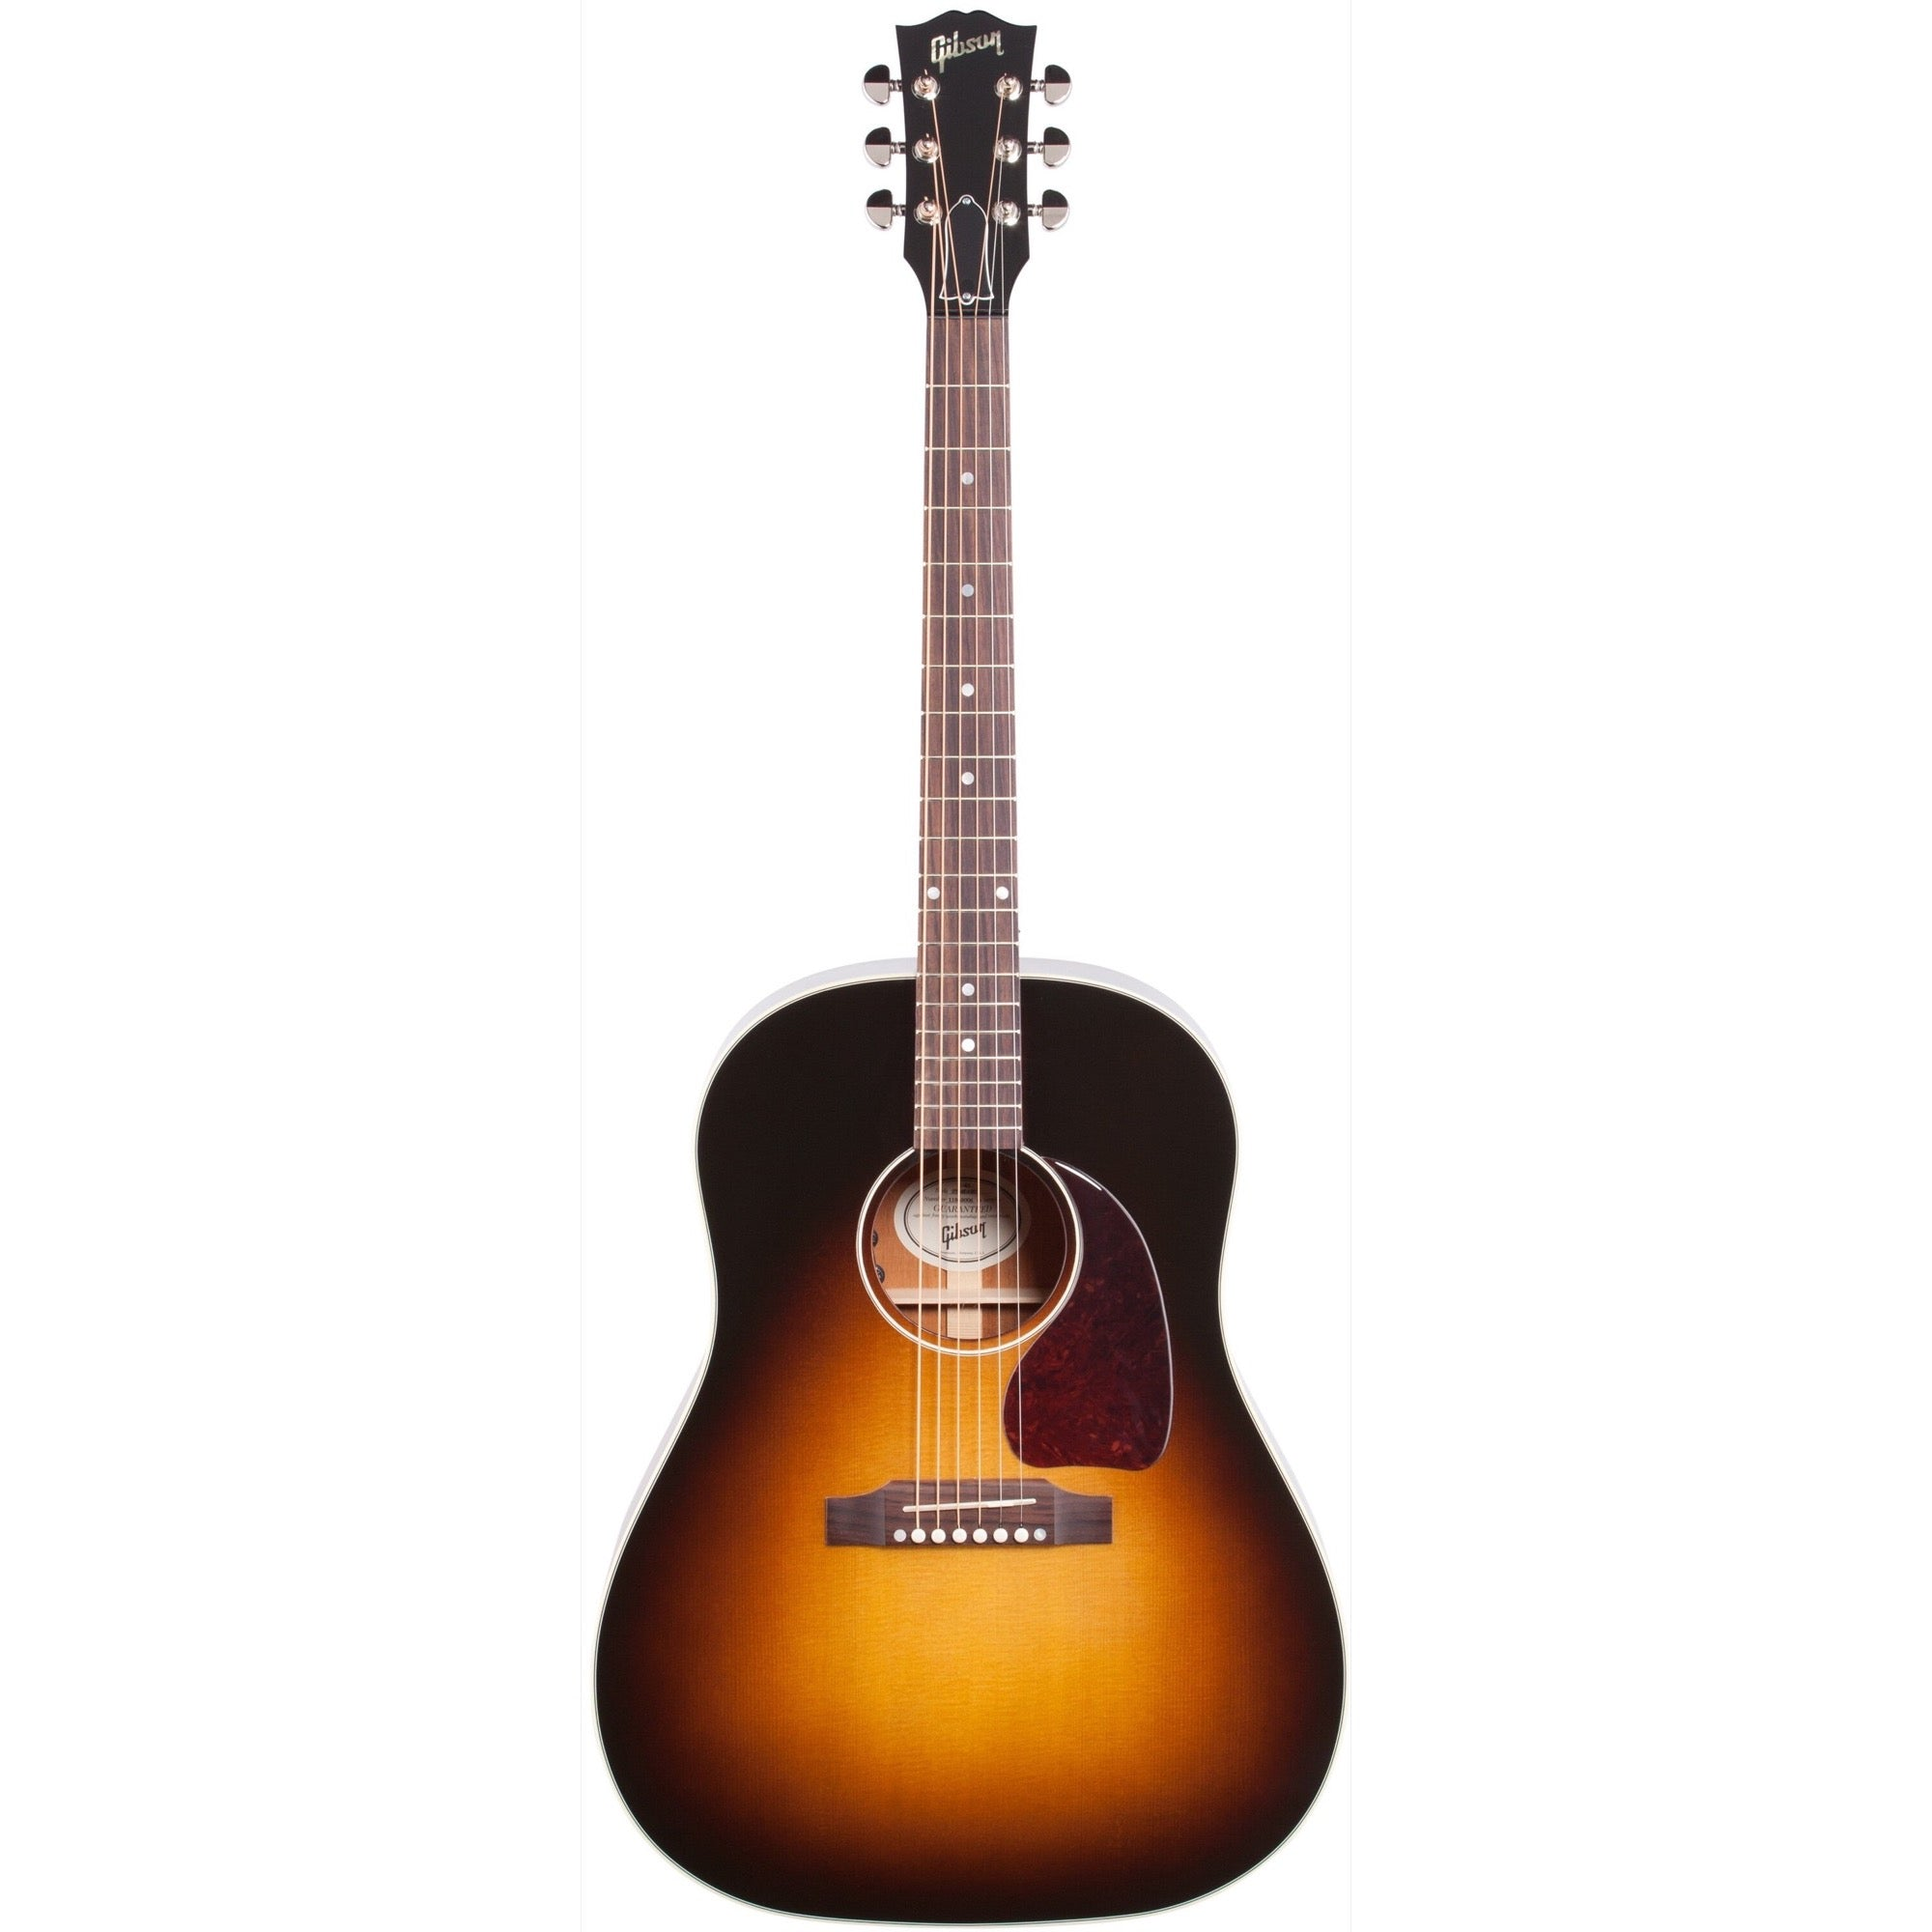 Gibson J-45 Standard Acoustic-Electric Guitar (with Case), Vintage Sunburst